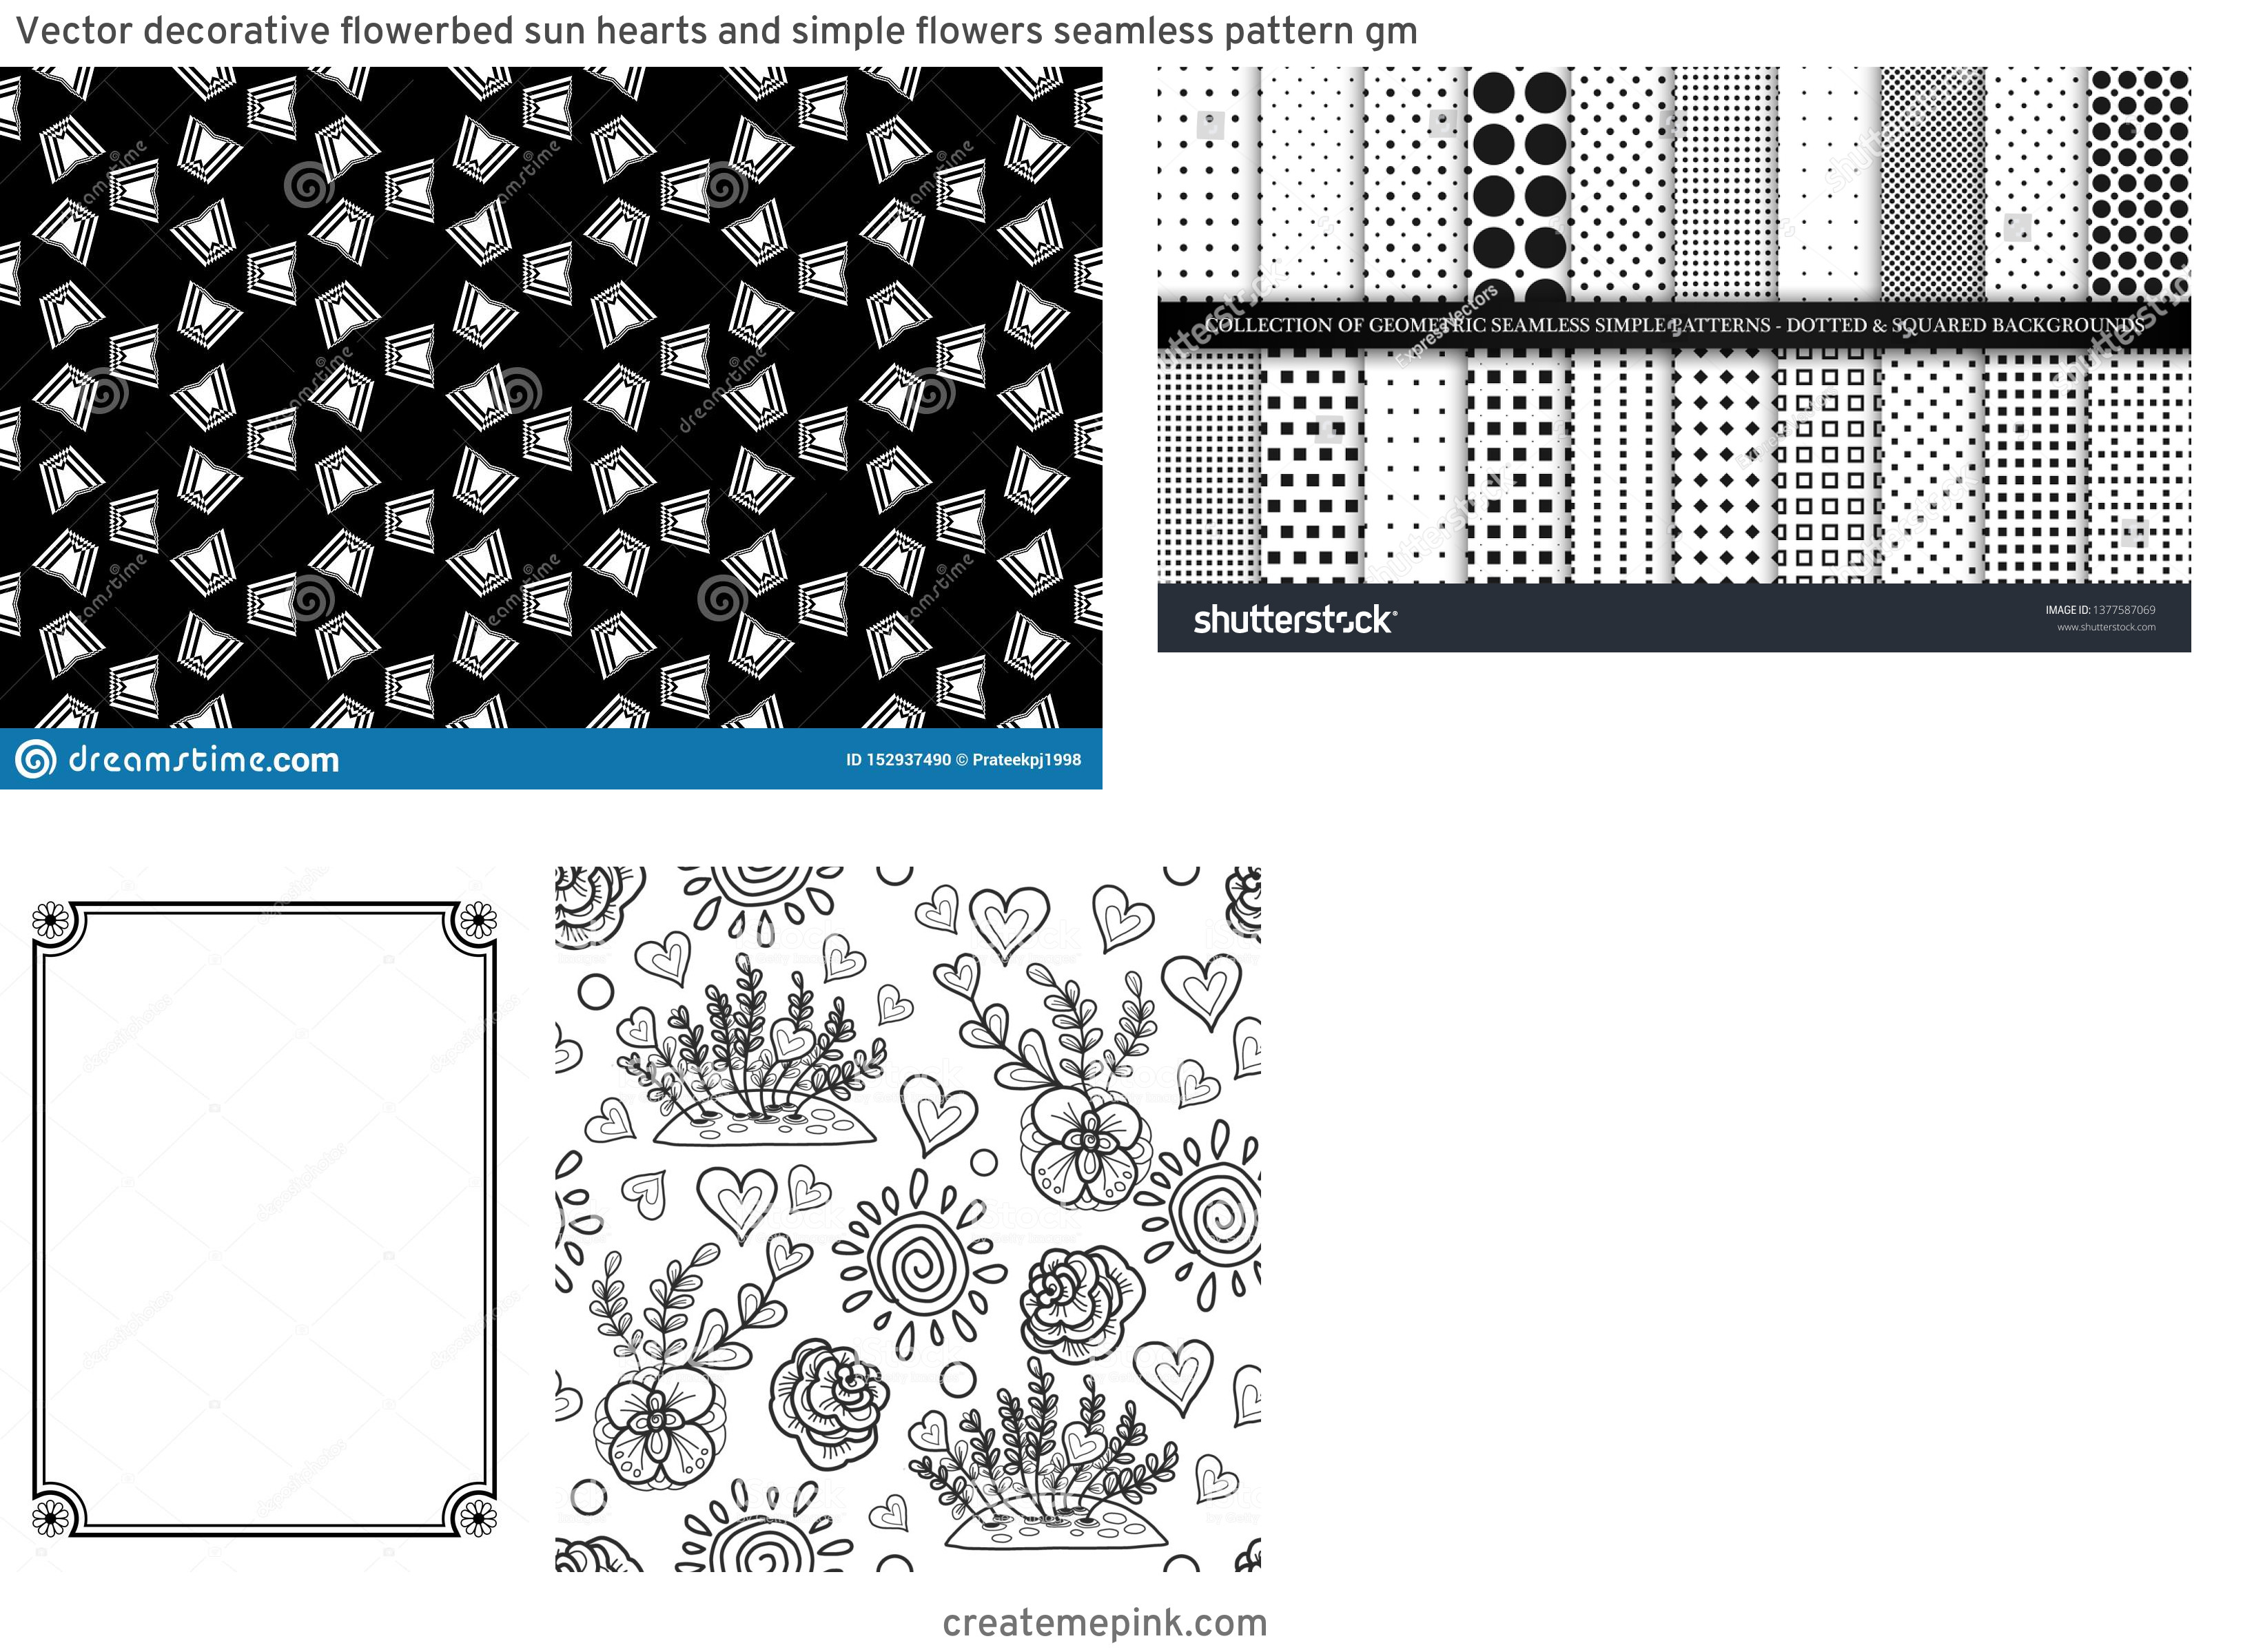 Simple Black Decorative Vector Patterns: Vector Decorative Flowerbed Sun Hearts And Simple Flowers Seamless Pattern Gm